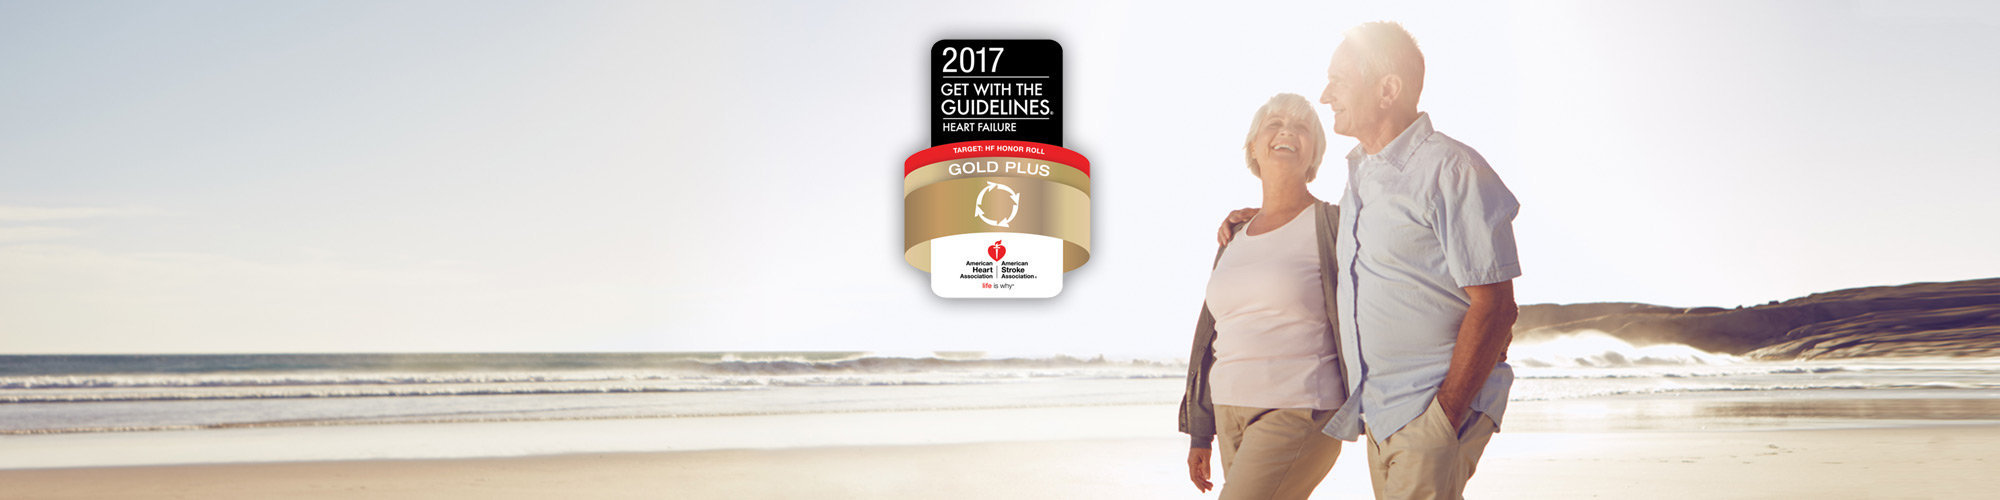 South Nassau is Gold-Plus certified in Heart Failure Learn more about this important designation ... HERE>